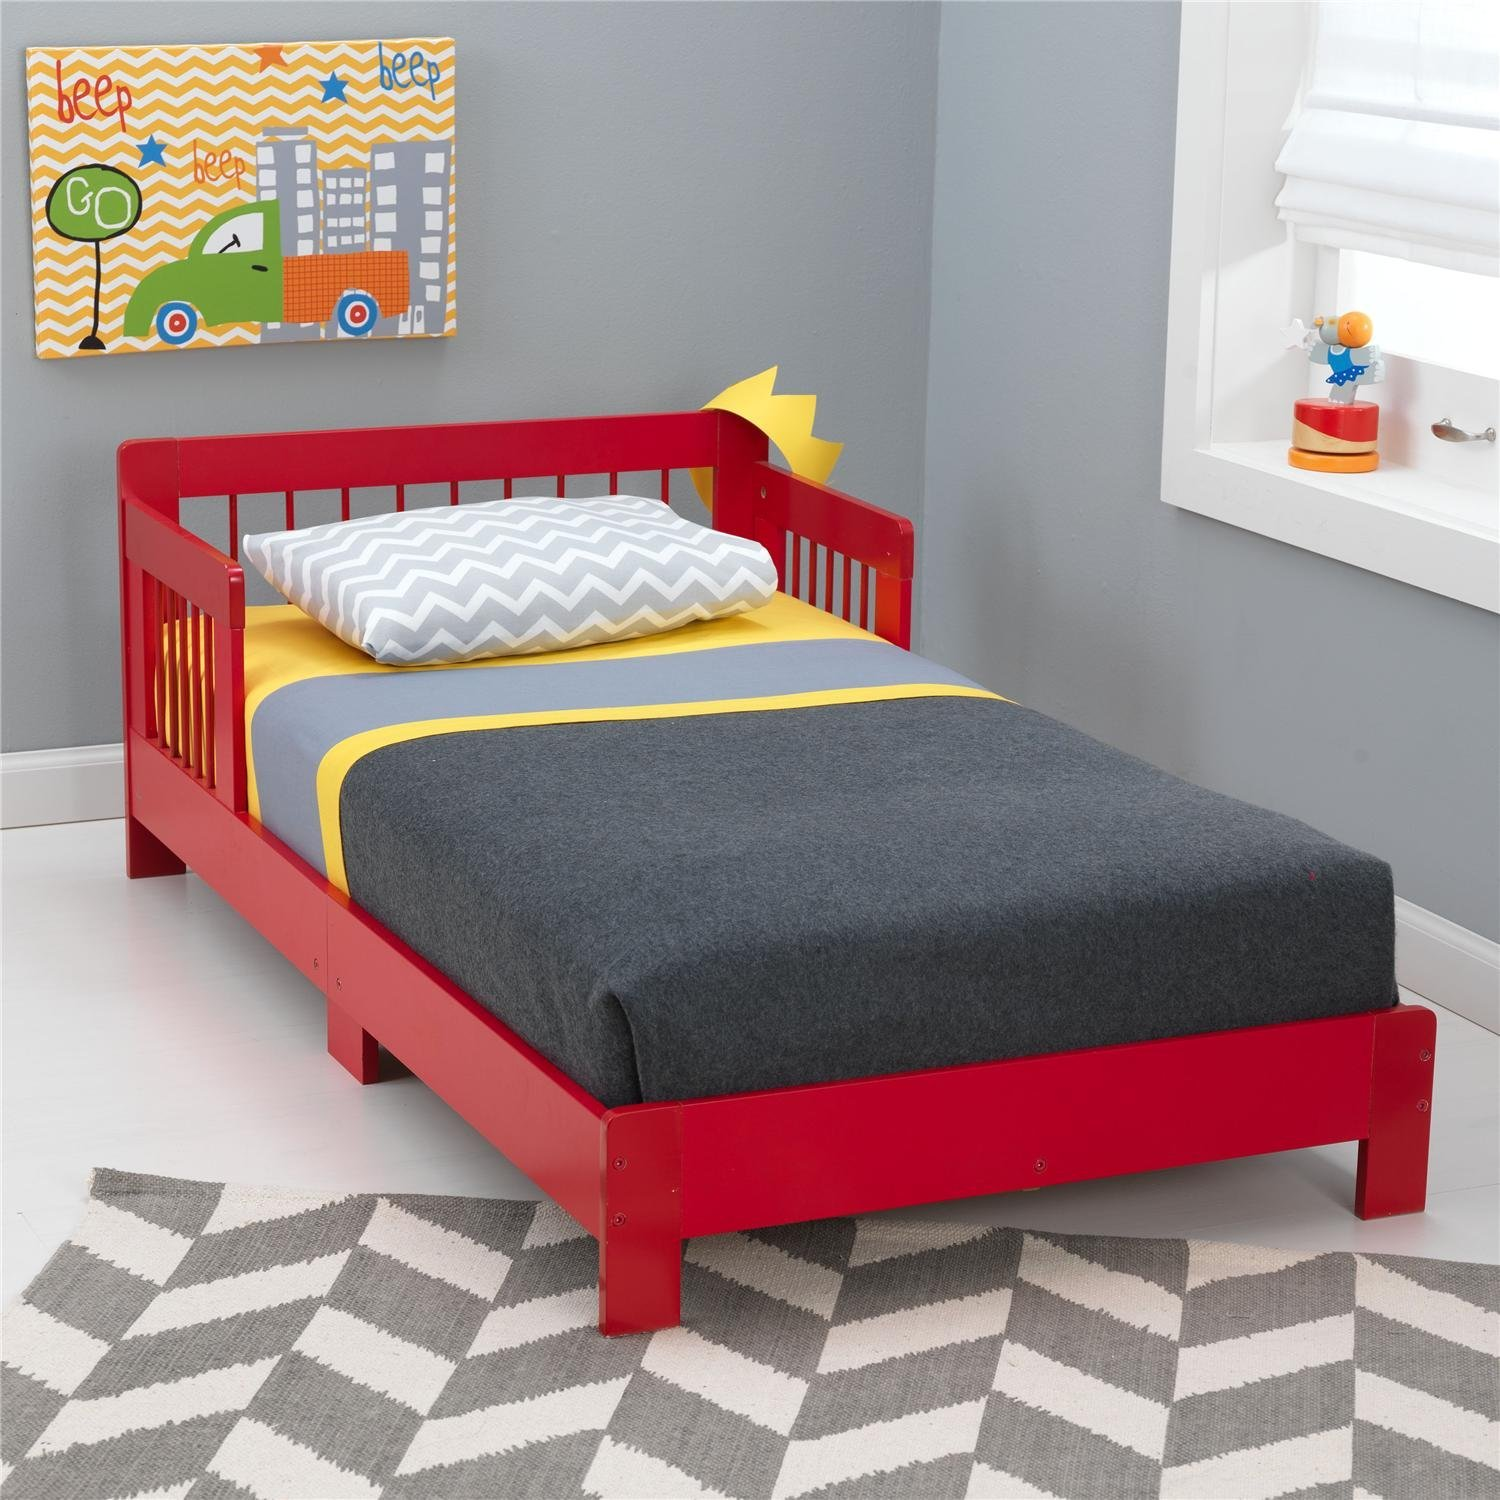 A Red Toddler Bed Will Extend Babys Tractor Crib Bedding